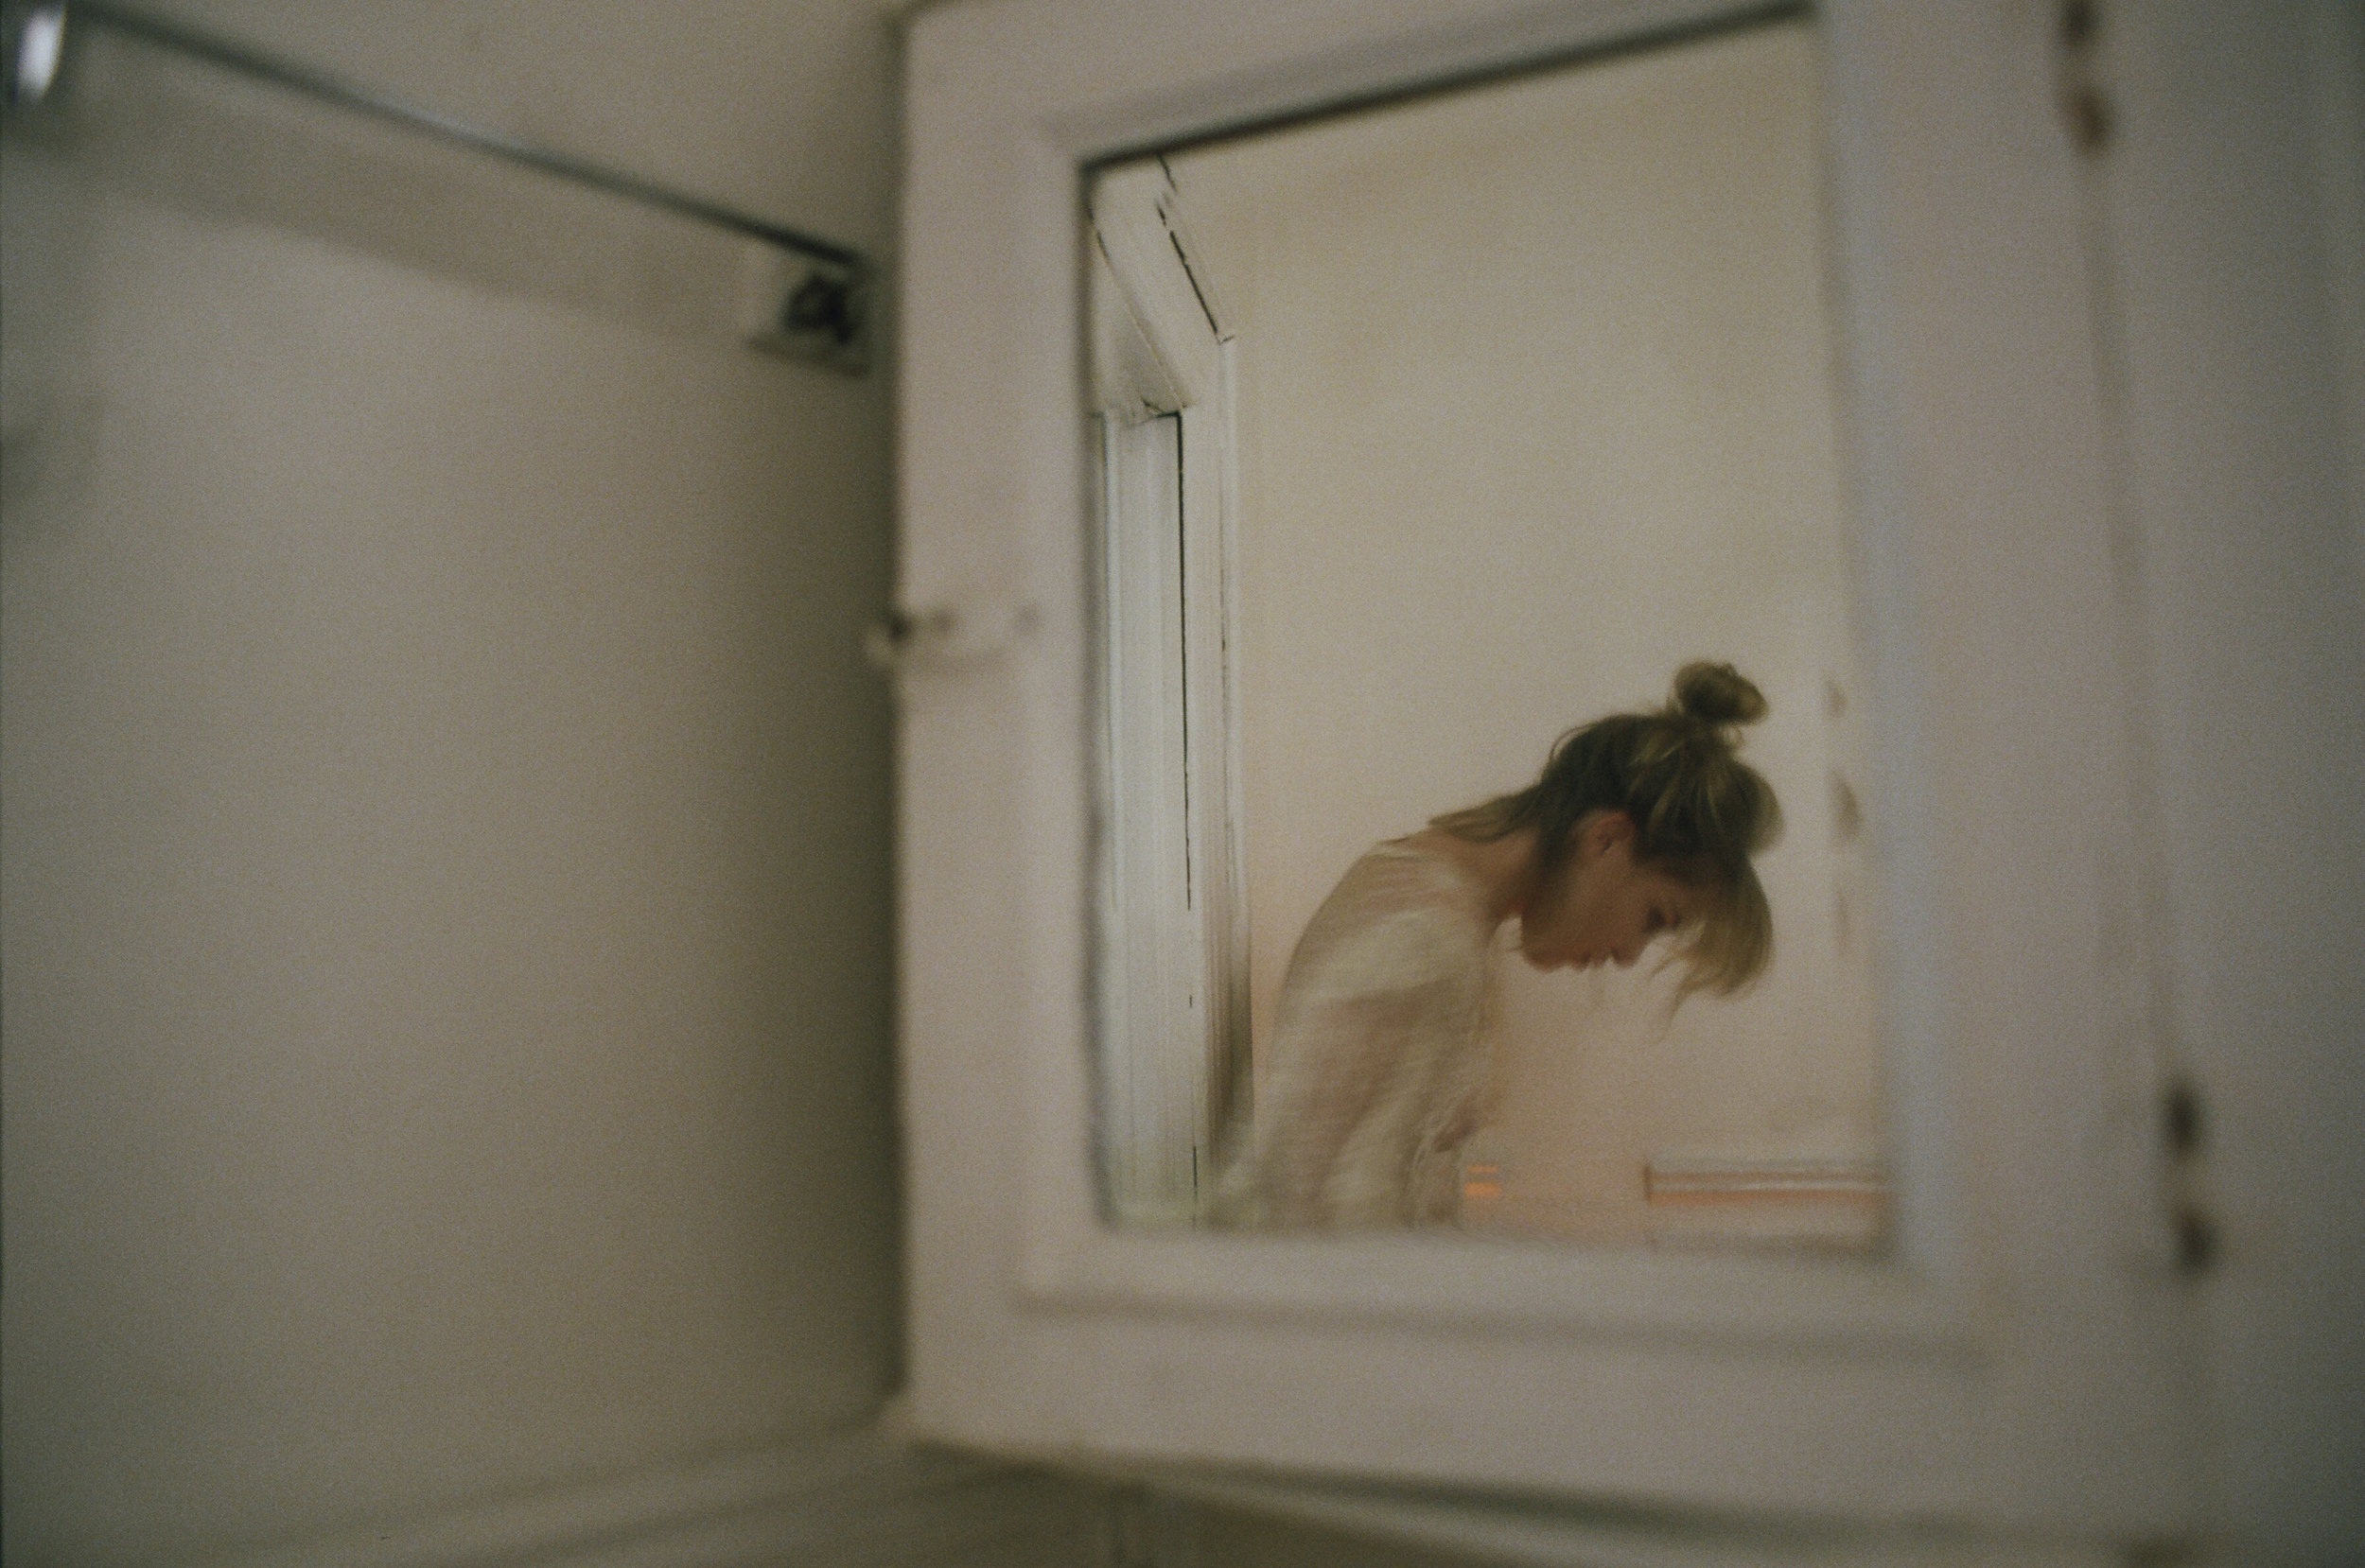 At home, by Lauren Withrow